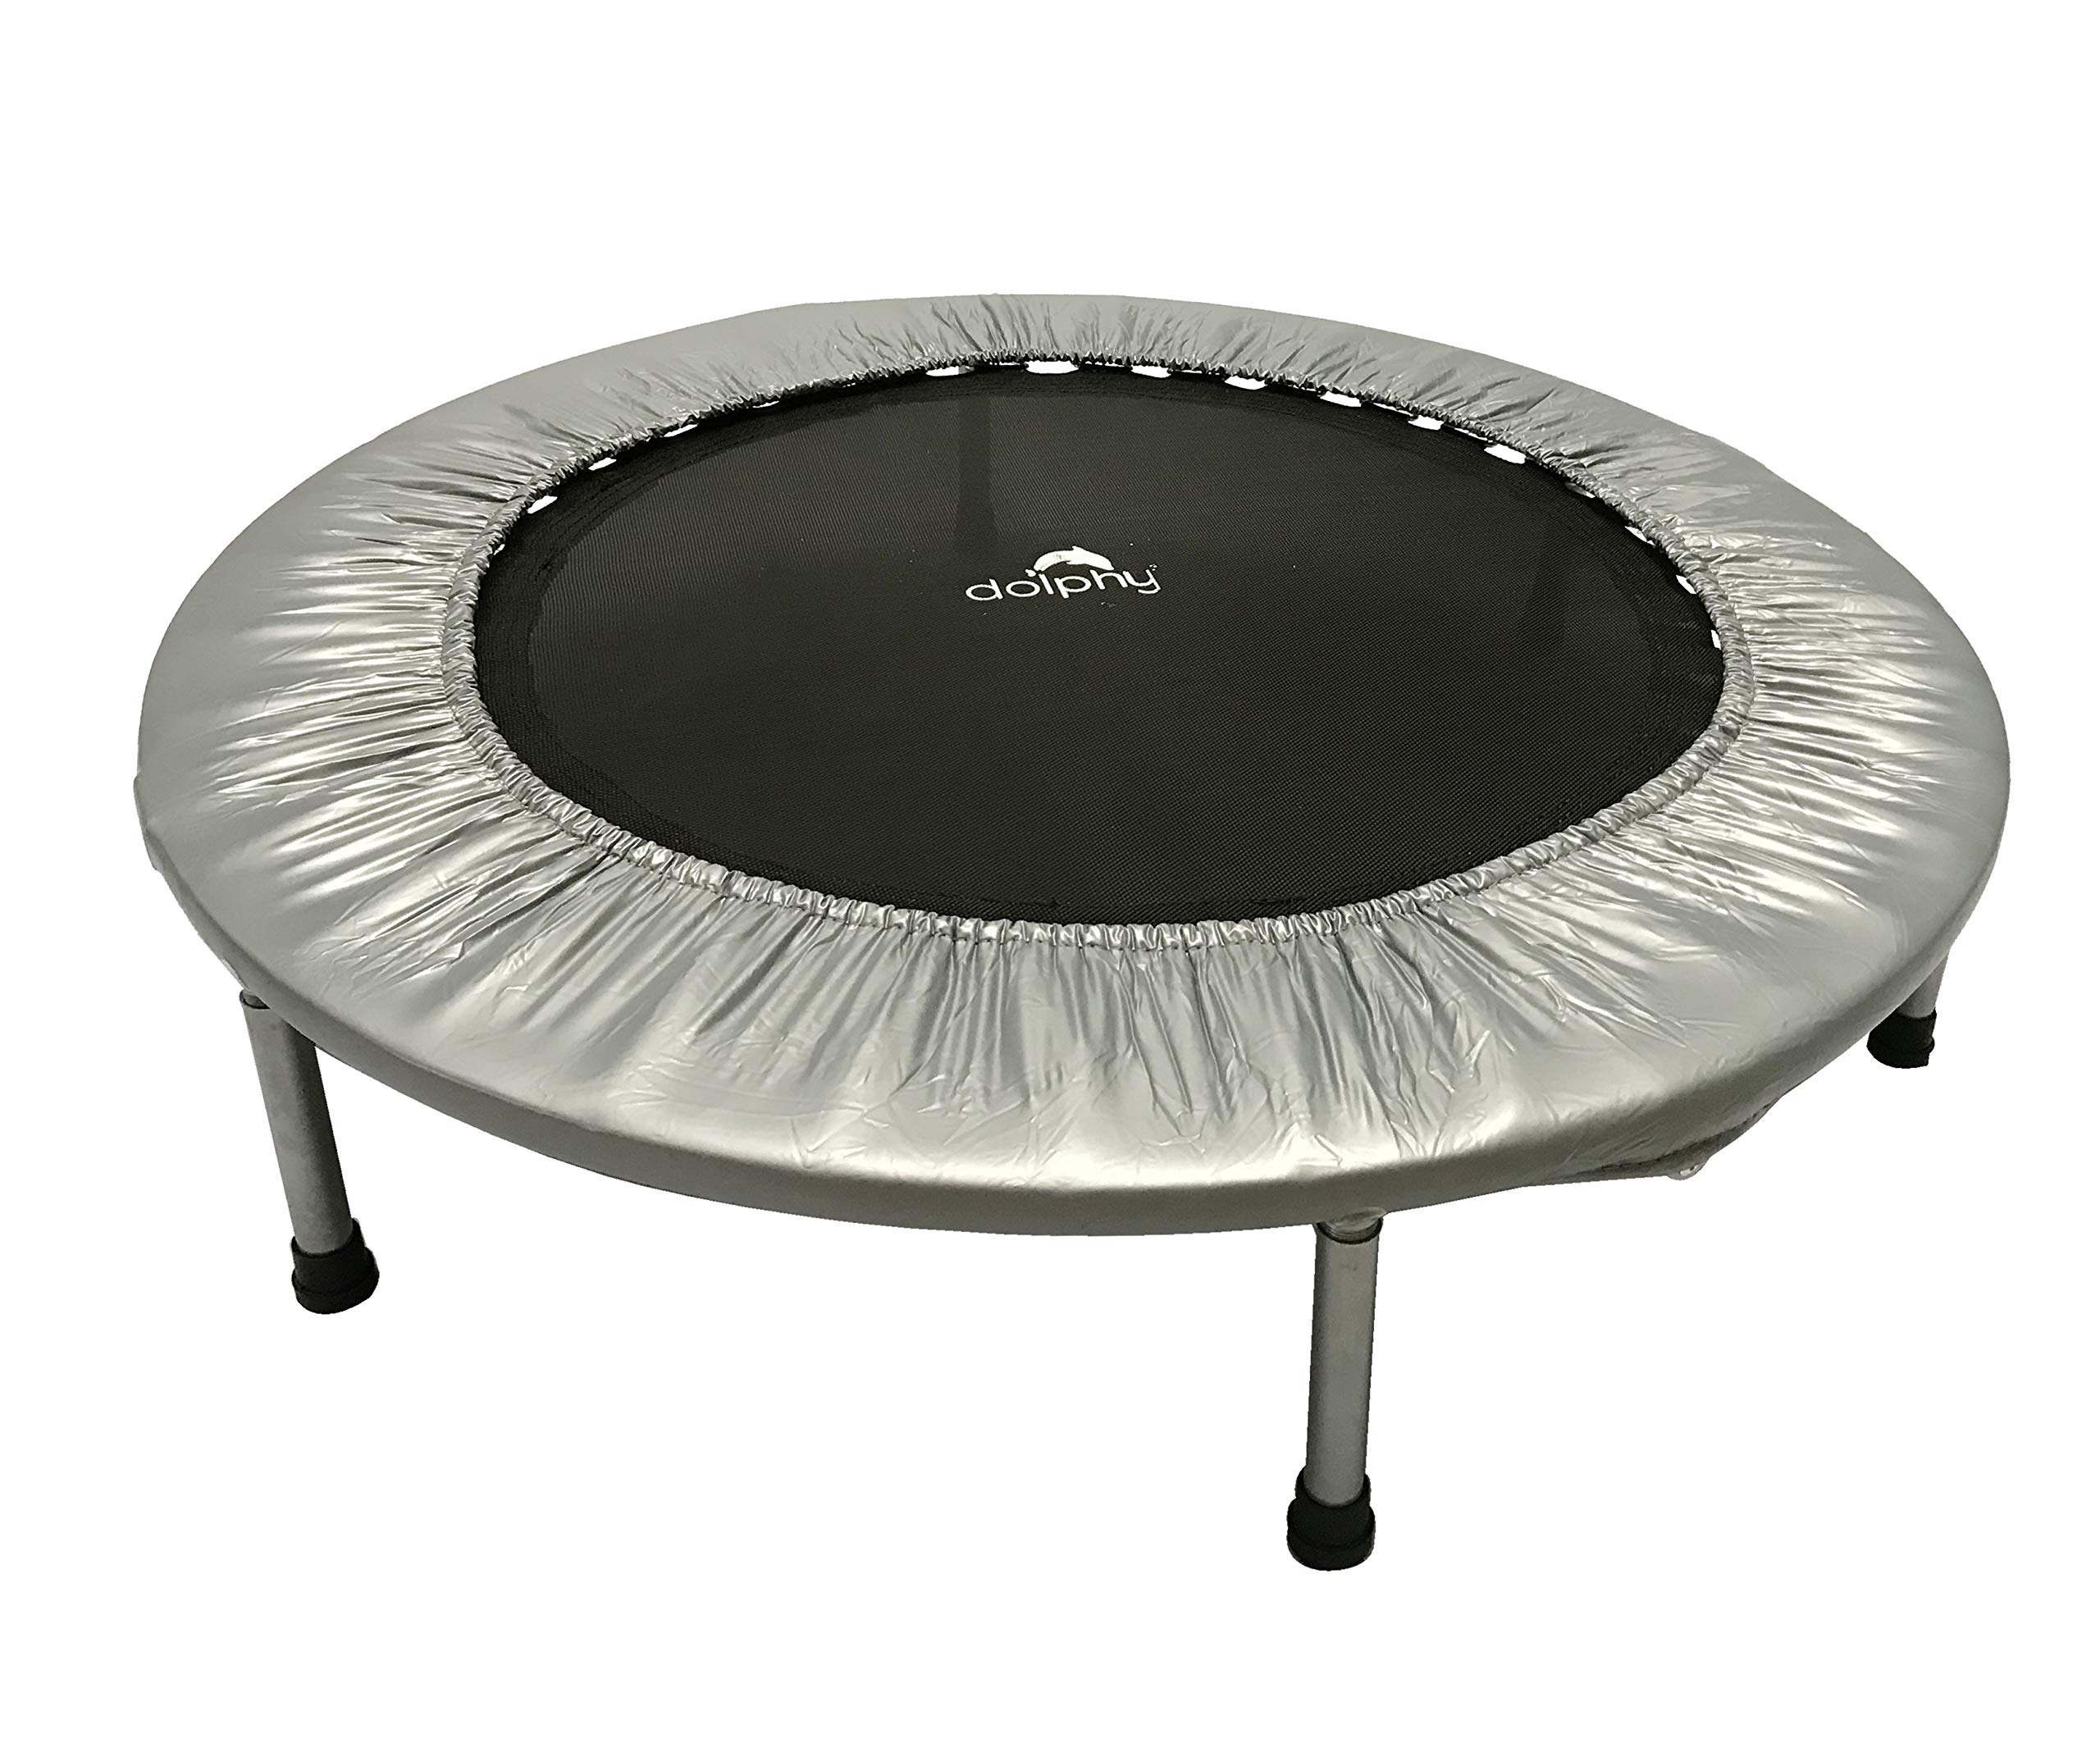 Dolphy Indoor/Outdoor Trampoline (40 Inches, Silver and Black) (B07HTN3LL7) Amazon Price History, Amazon Price Tracker